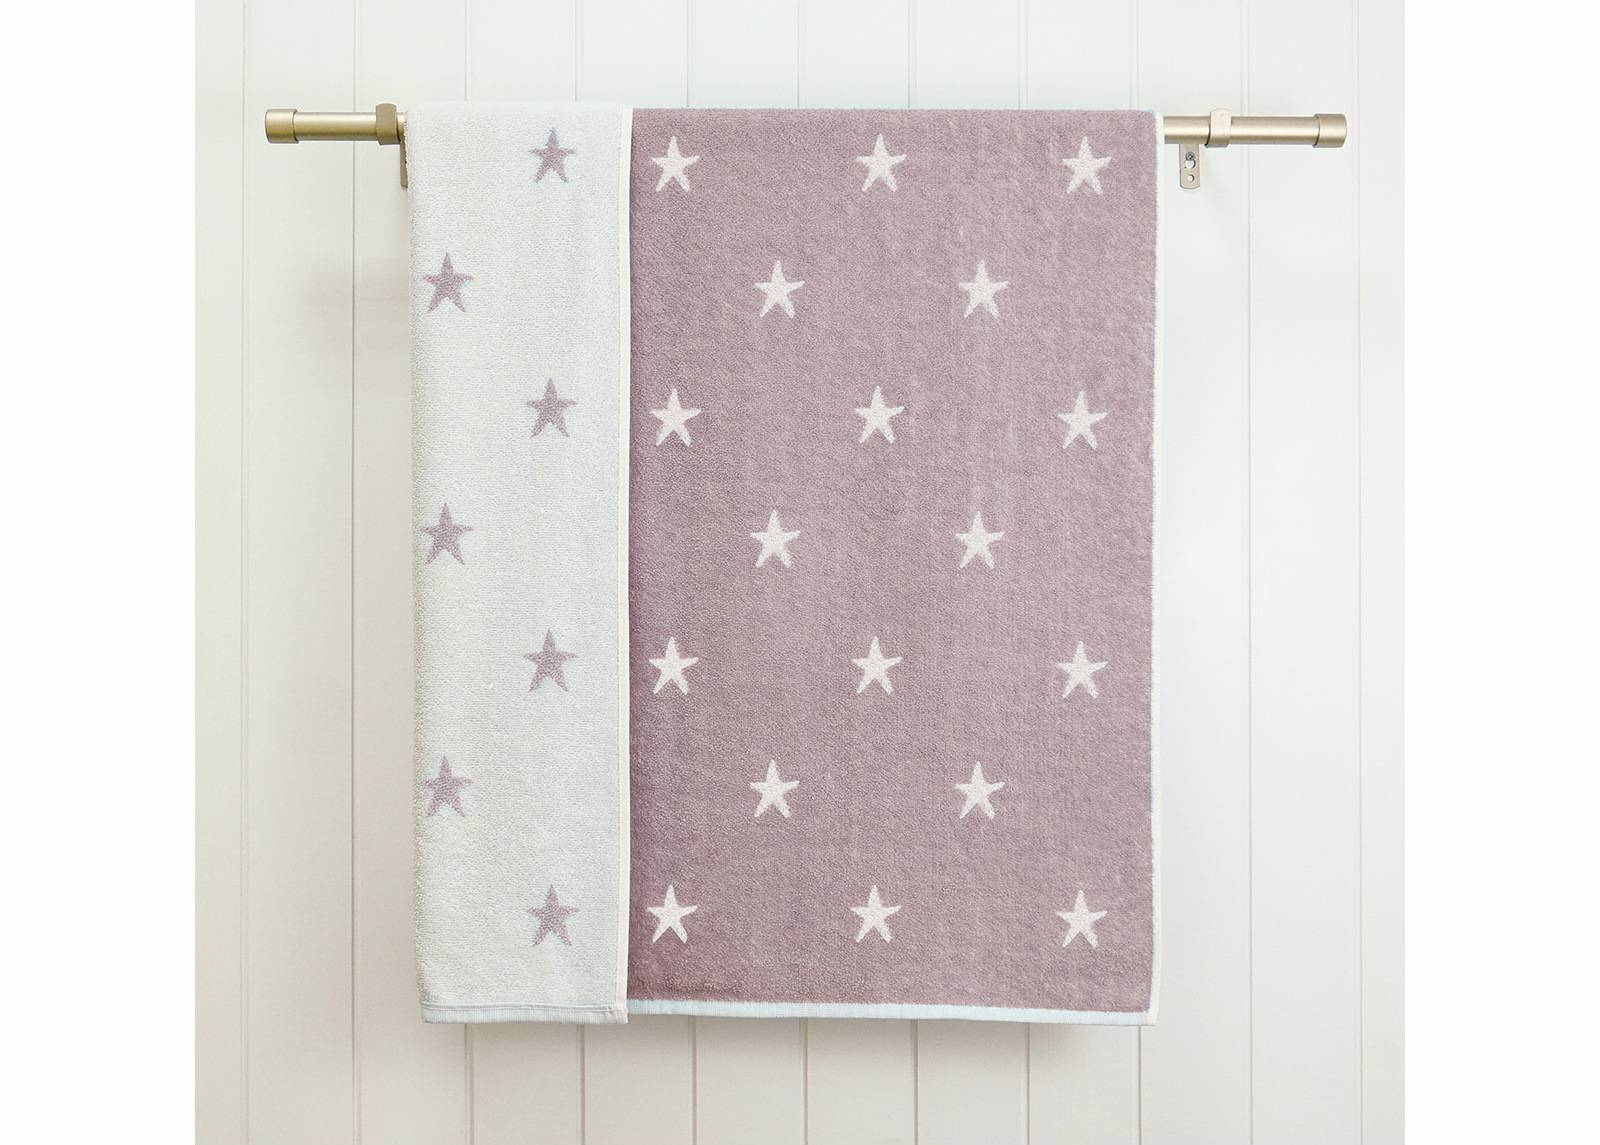 ARDENZA BABY Froteepyyhe Stars 70x120 cm, violetti